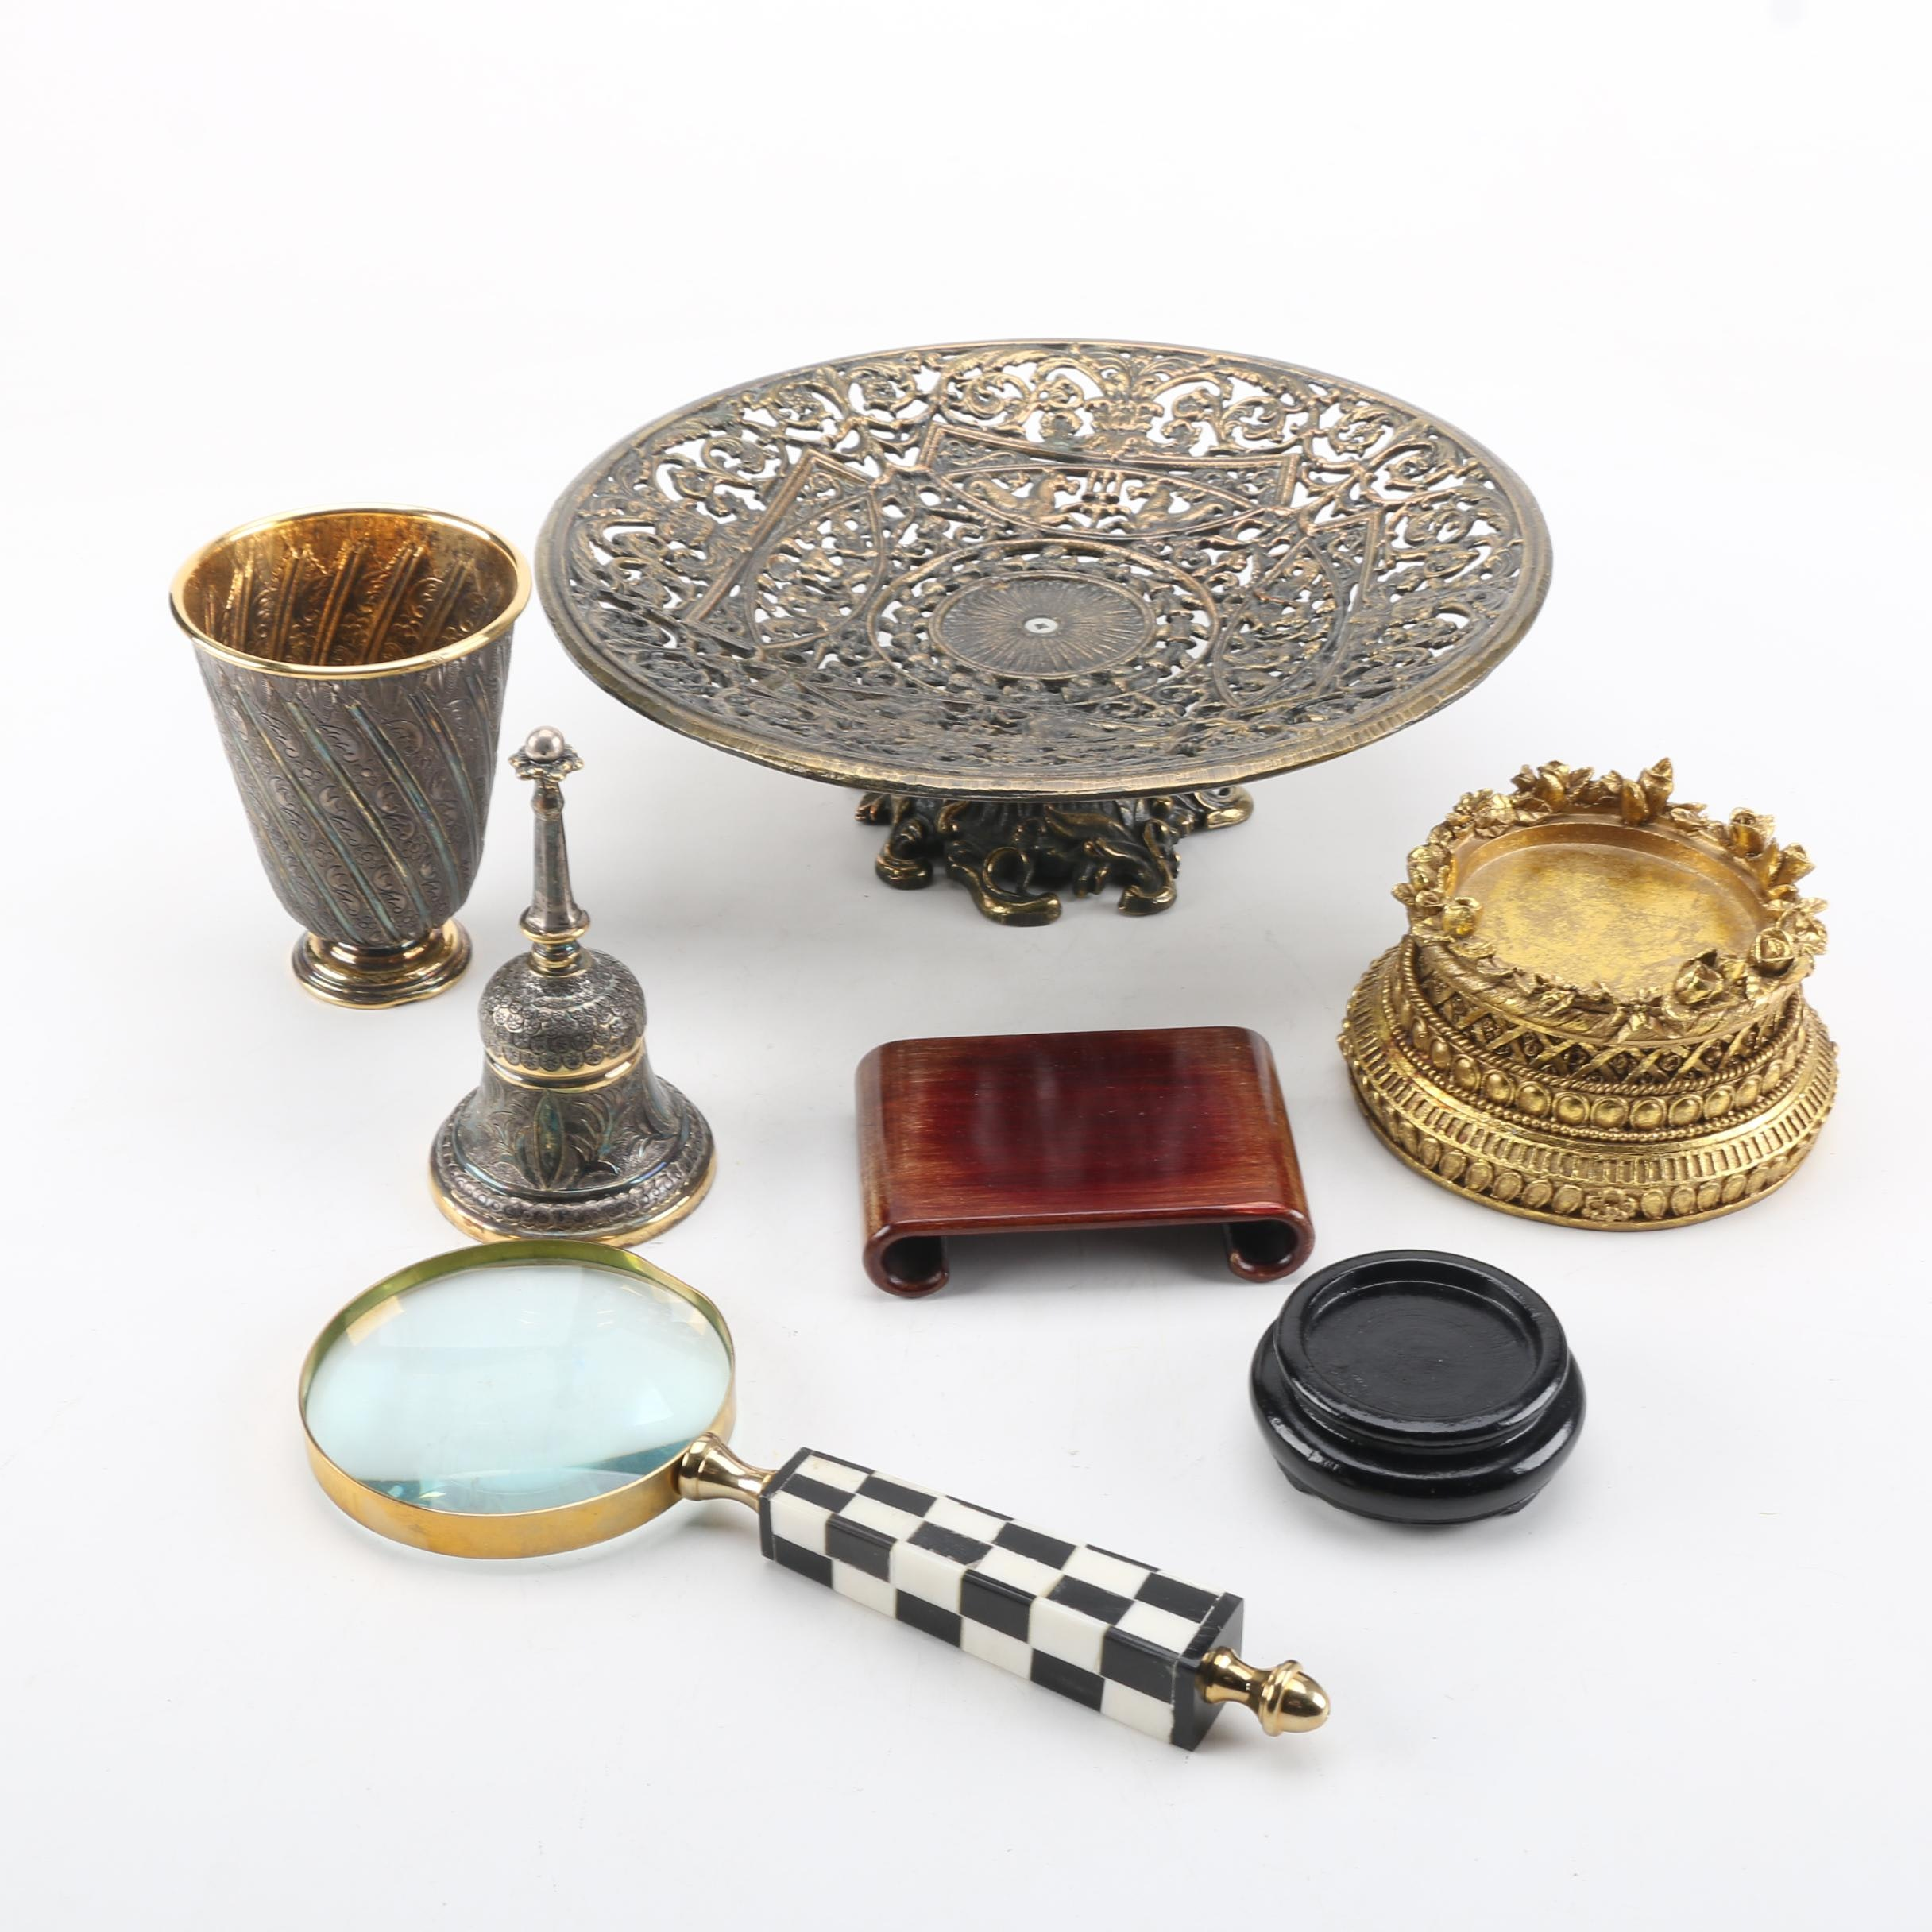 Tane Orfebres Mexican Gilt Sterling Cup and Bell with Other Decorative Items